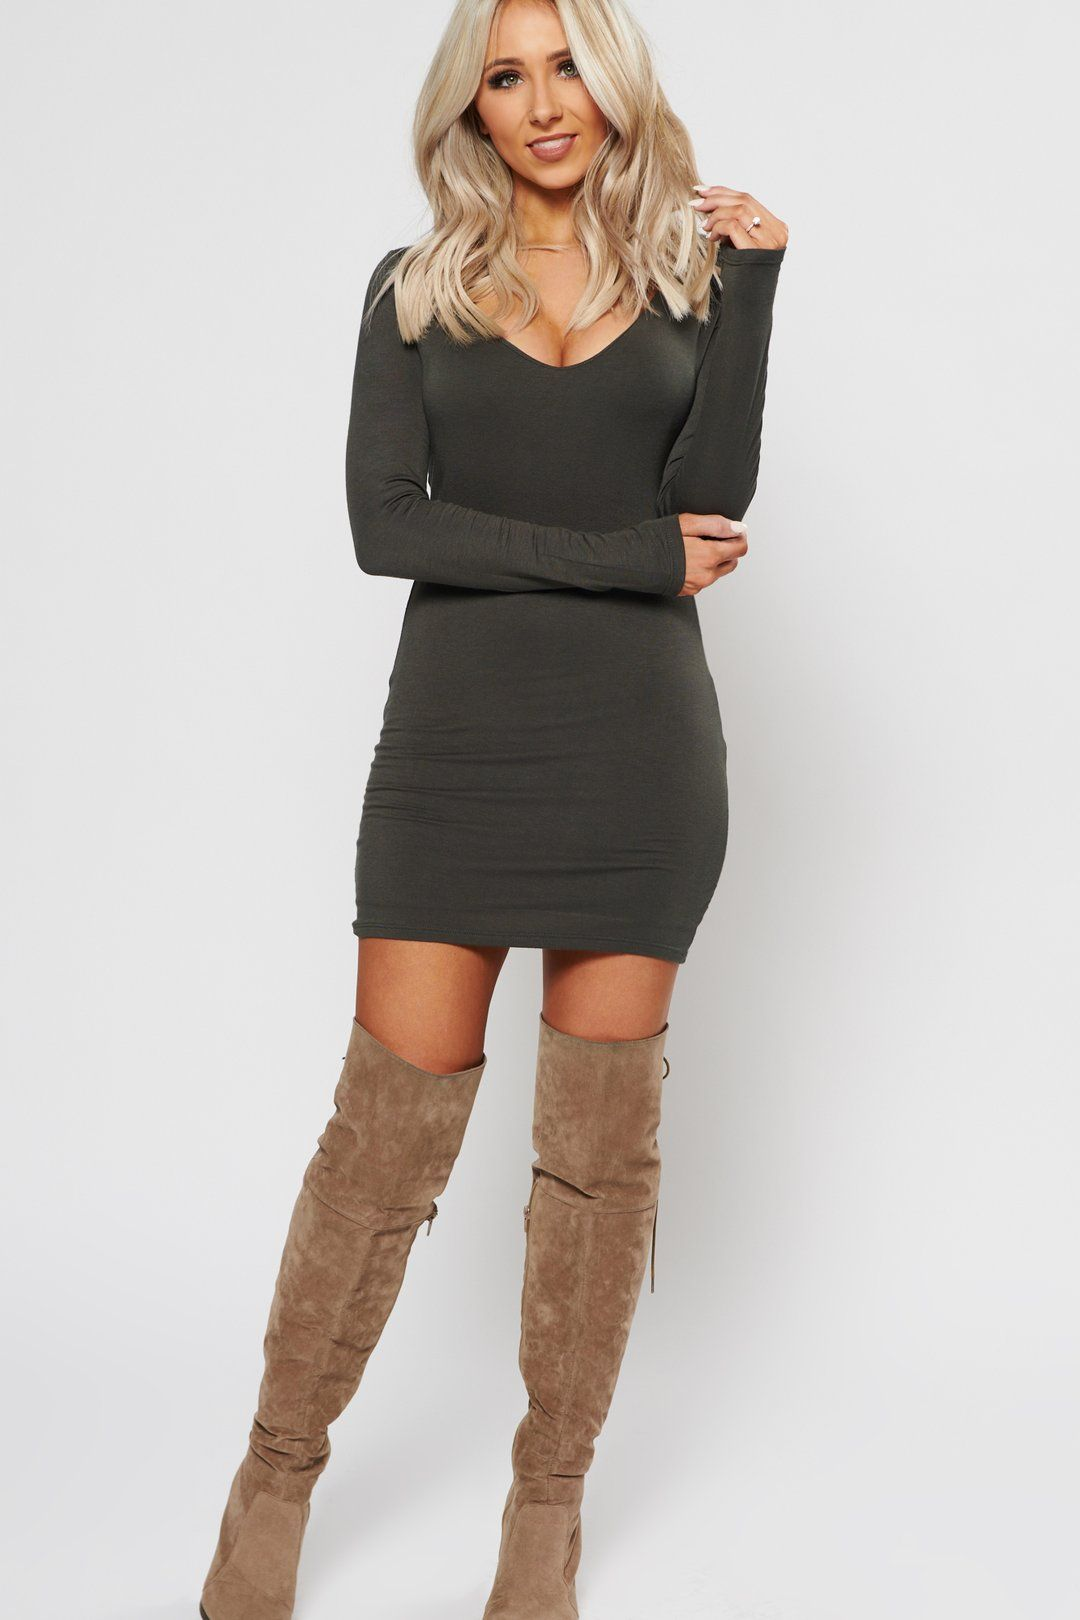 Stop Staring Bodycon Military Olive Dress Boots Outfit Fashion Dress With Boots [ 1620 x 1080 Pixel ]